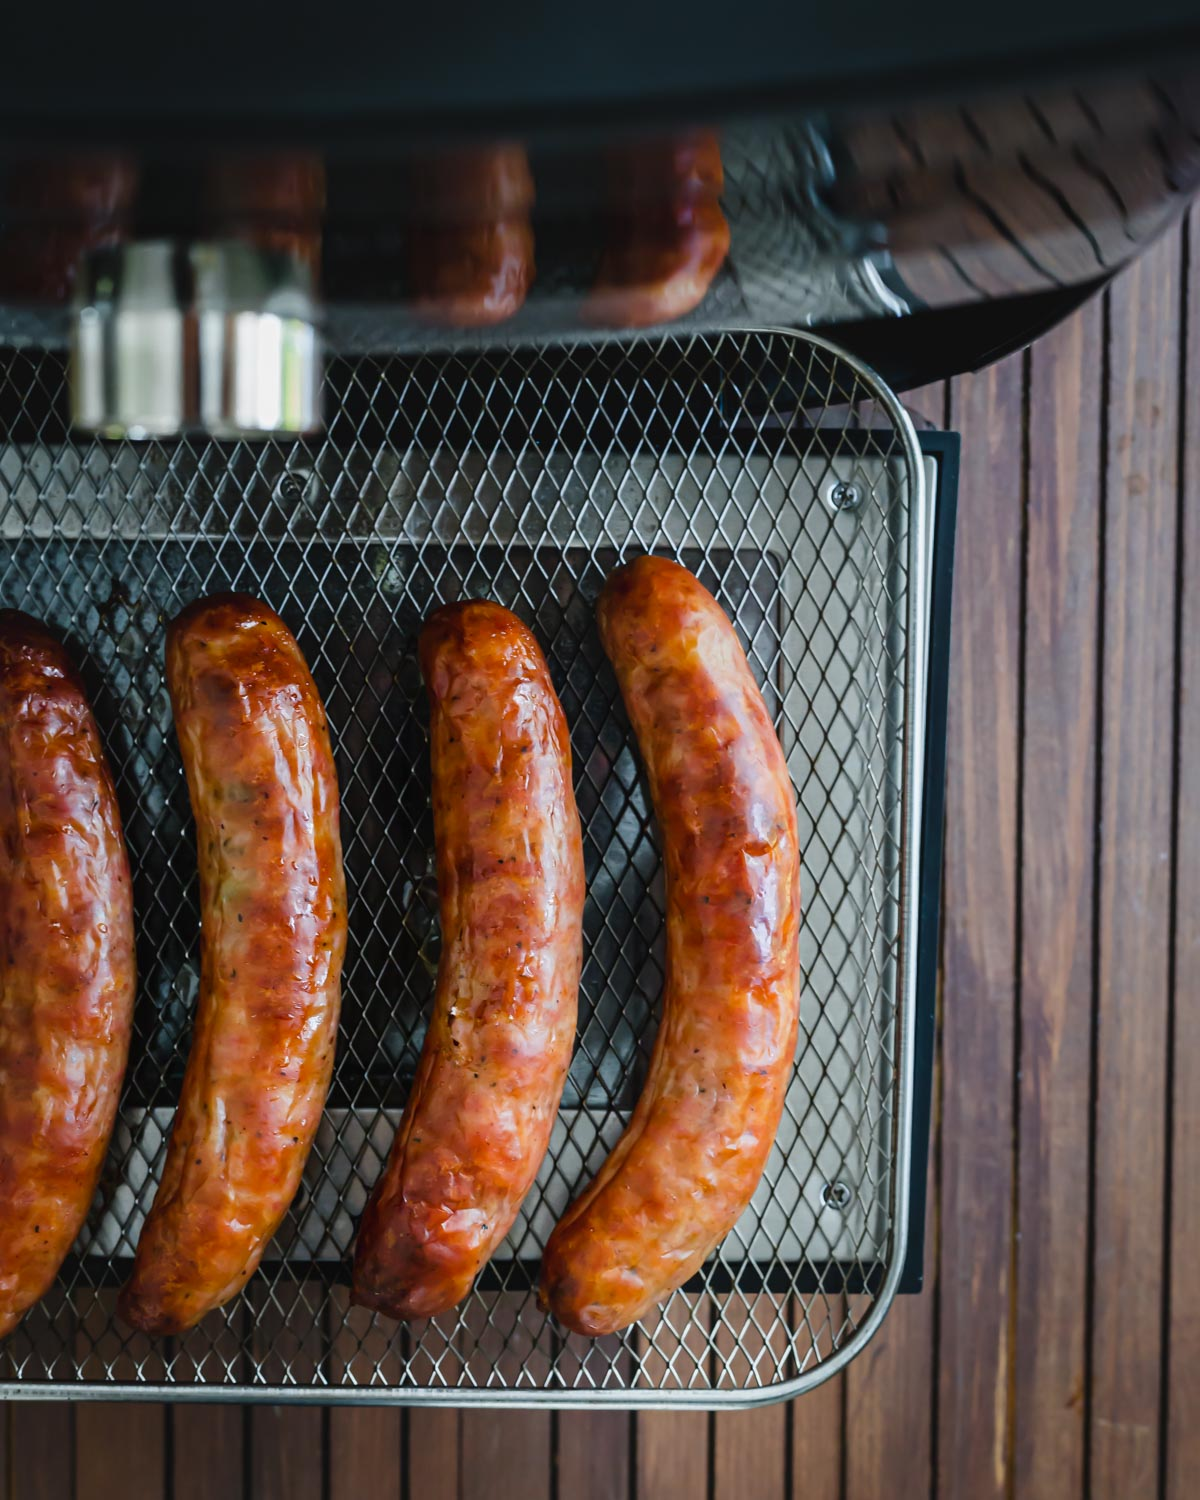 Juicy air fryer brats on the air fryer tray.